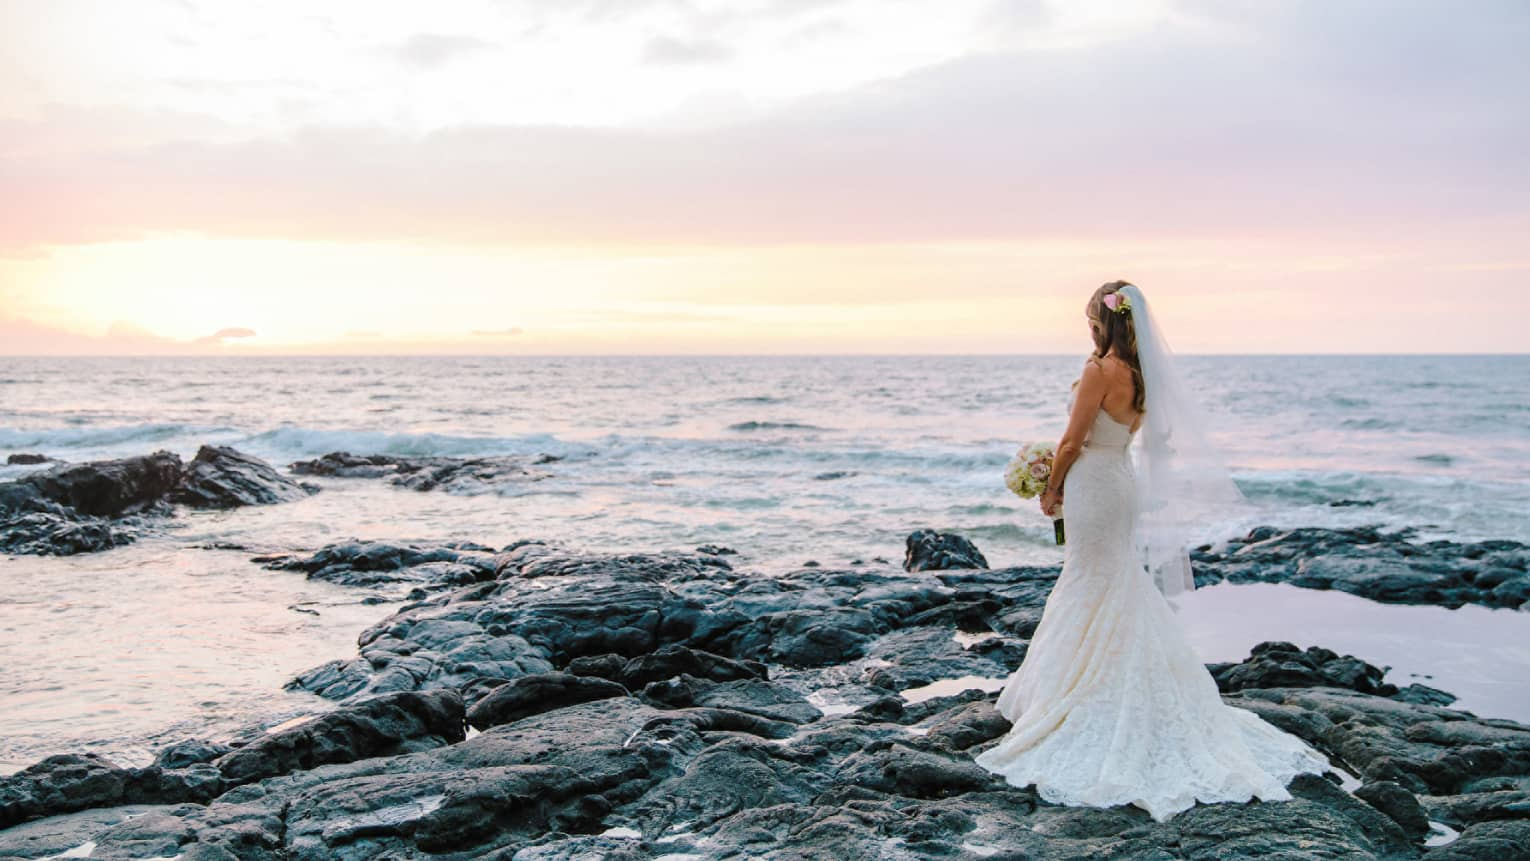 Bride in white wedding gown poses on black lava rocks by ocean